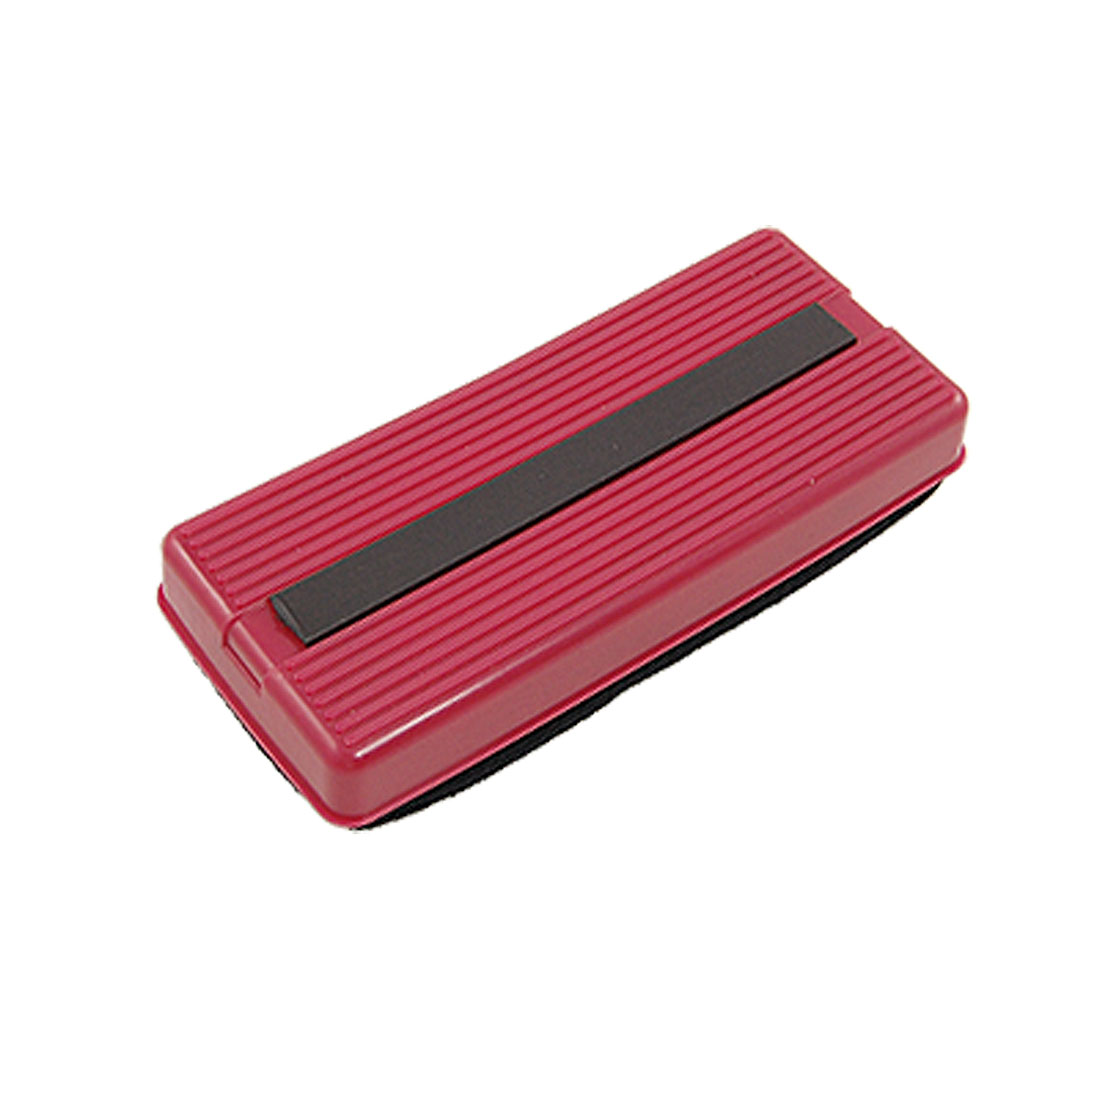 Rectangle Plastic Grip Magnetic Blackboard Eraser Red